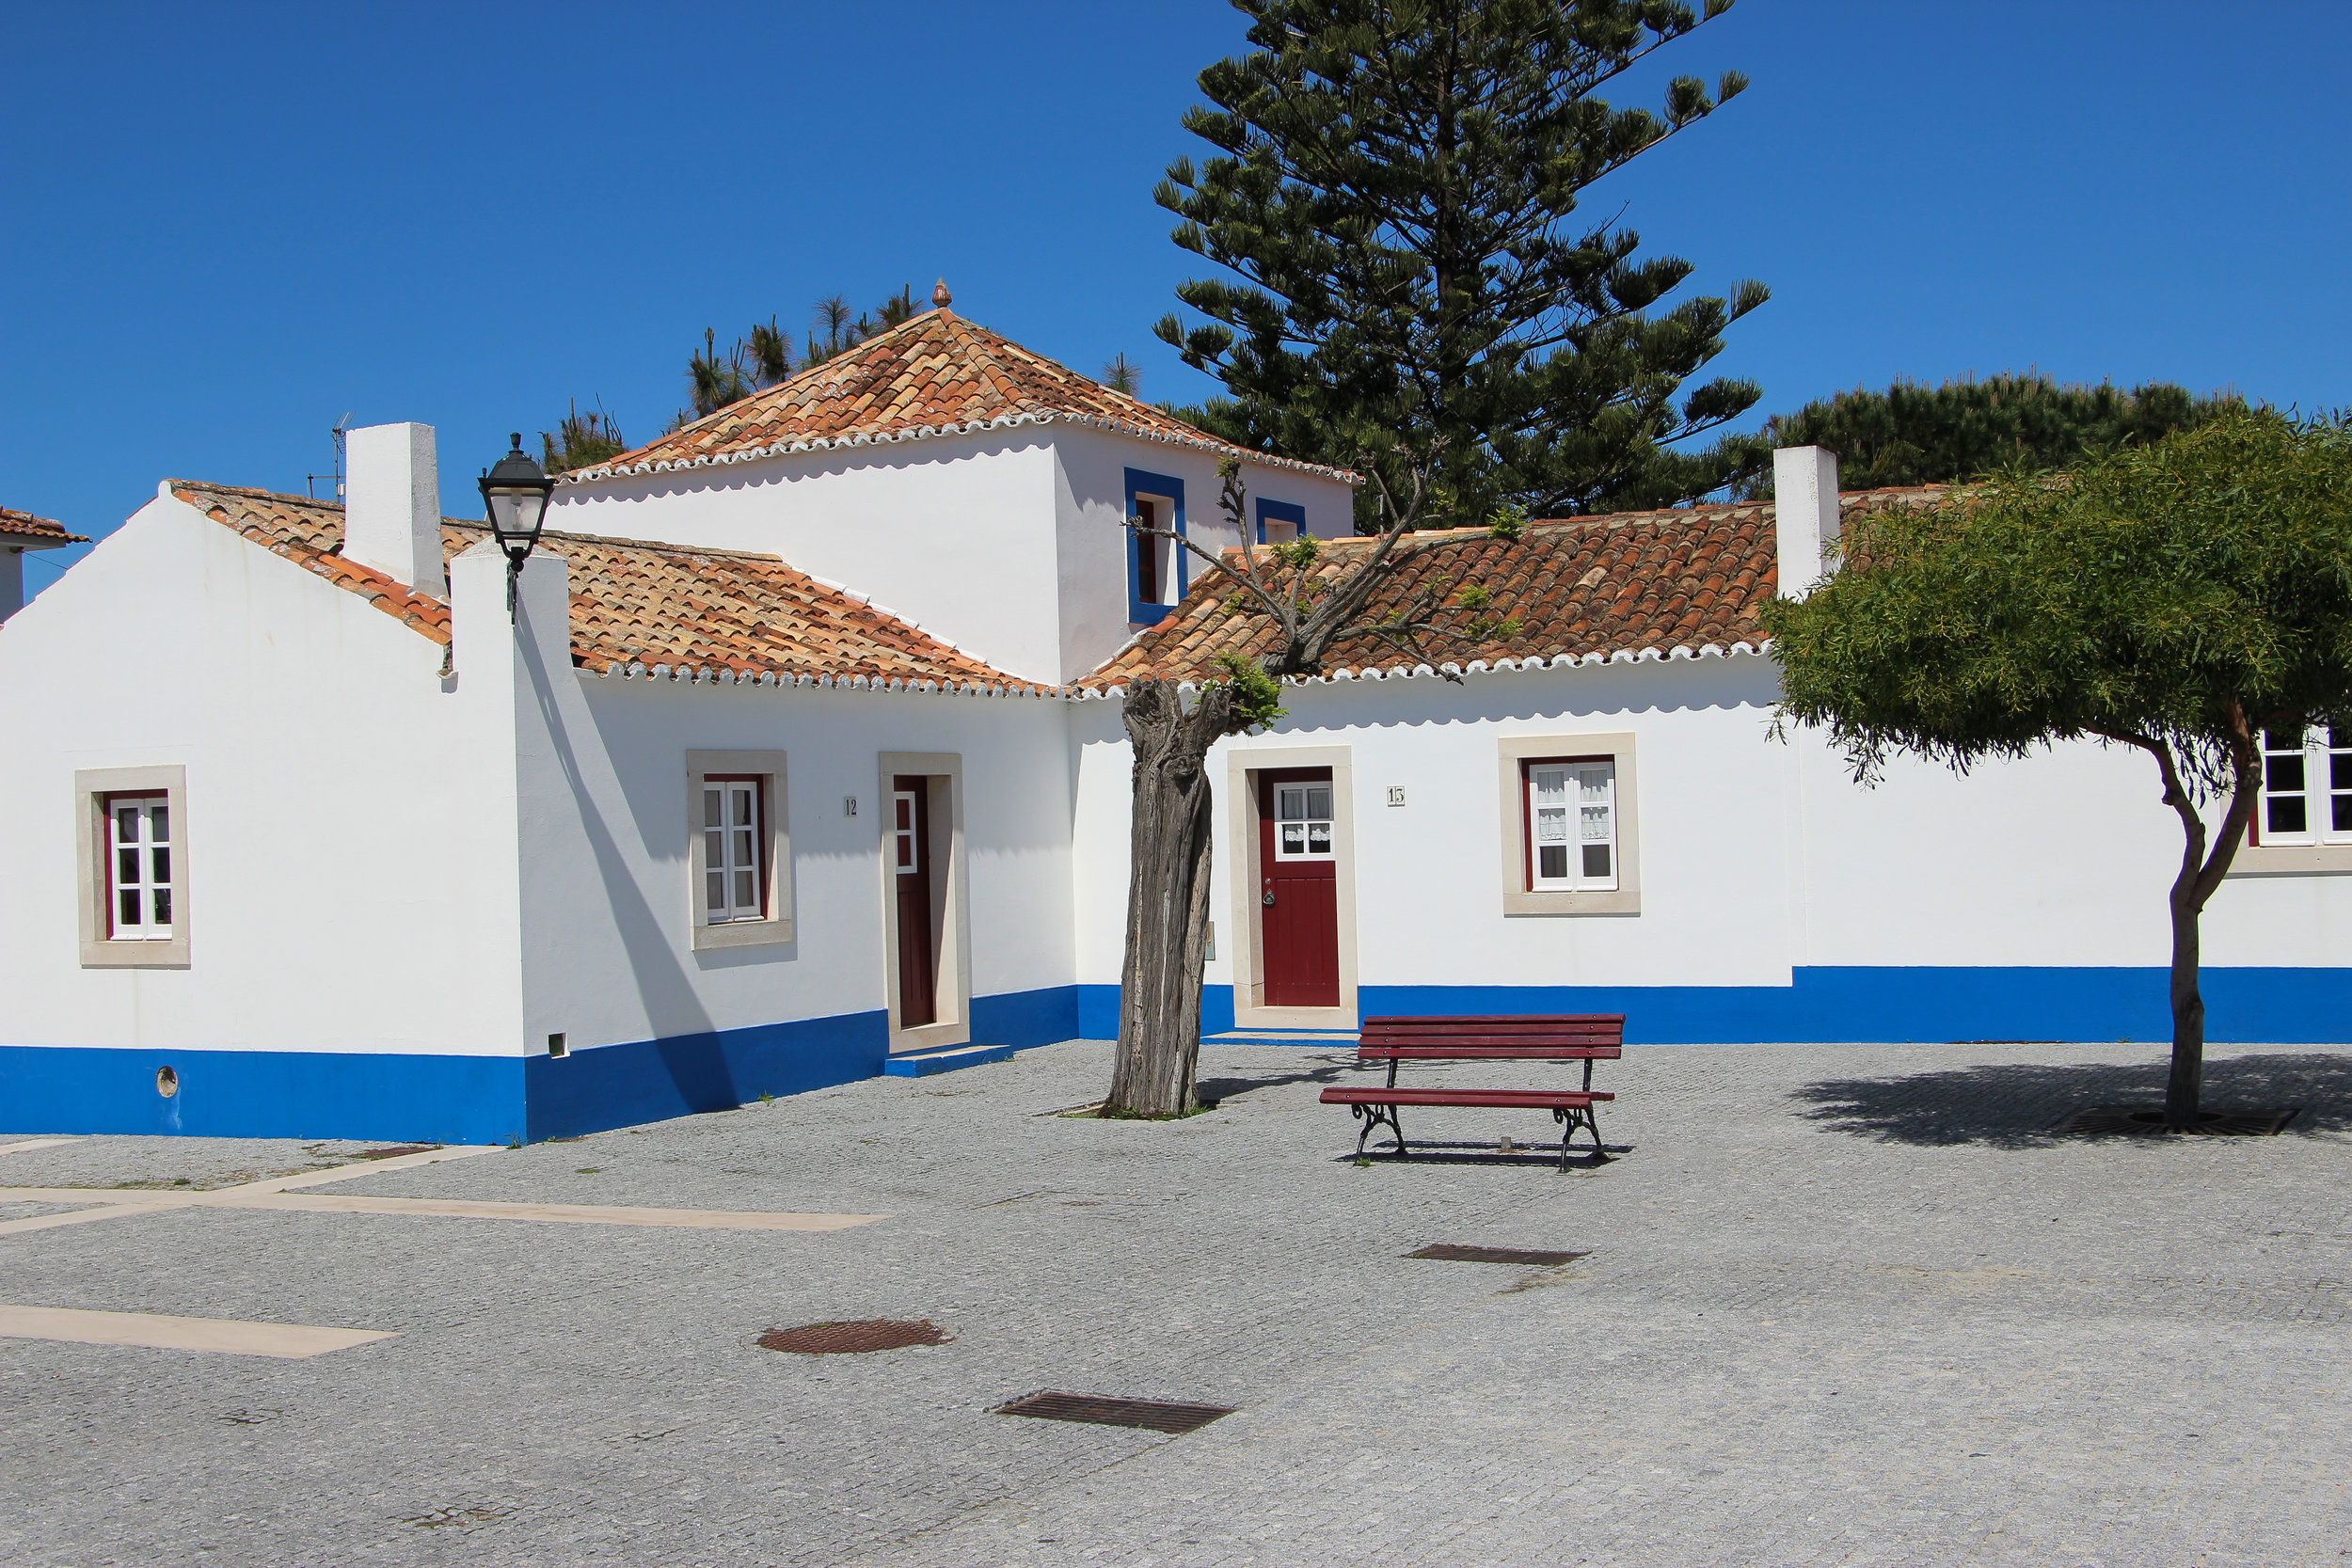 Porto Covo fishing village | Alentejo, Portugal, Europe | DoLessGetMoreDone.com | How to be on the good side of traveling?